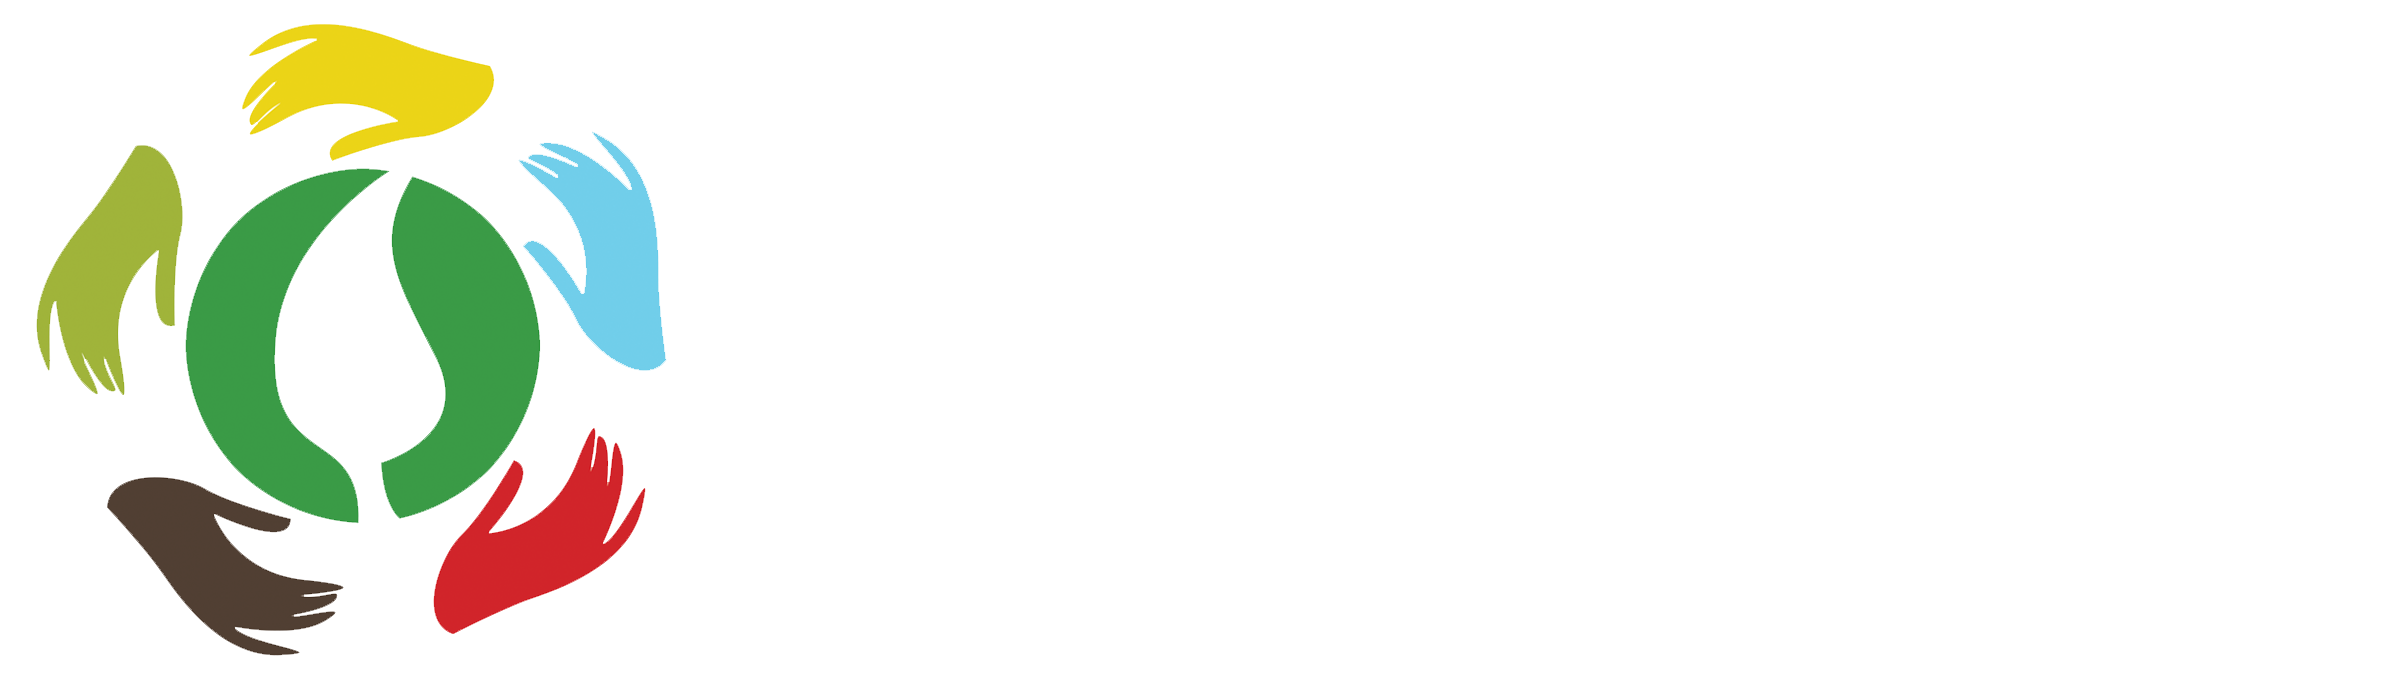 we need trees